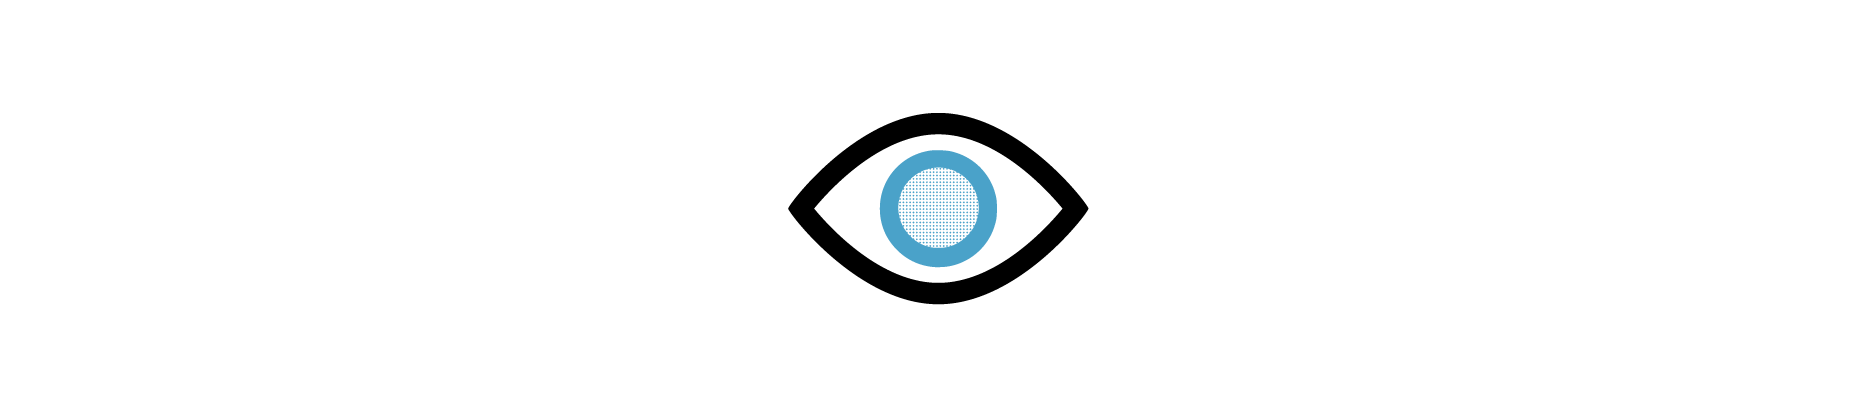 Cataract-01.png